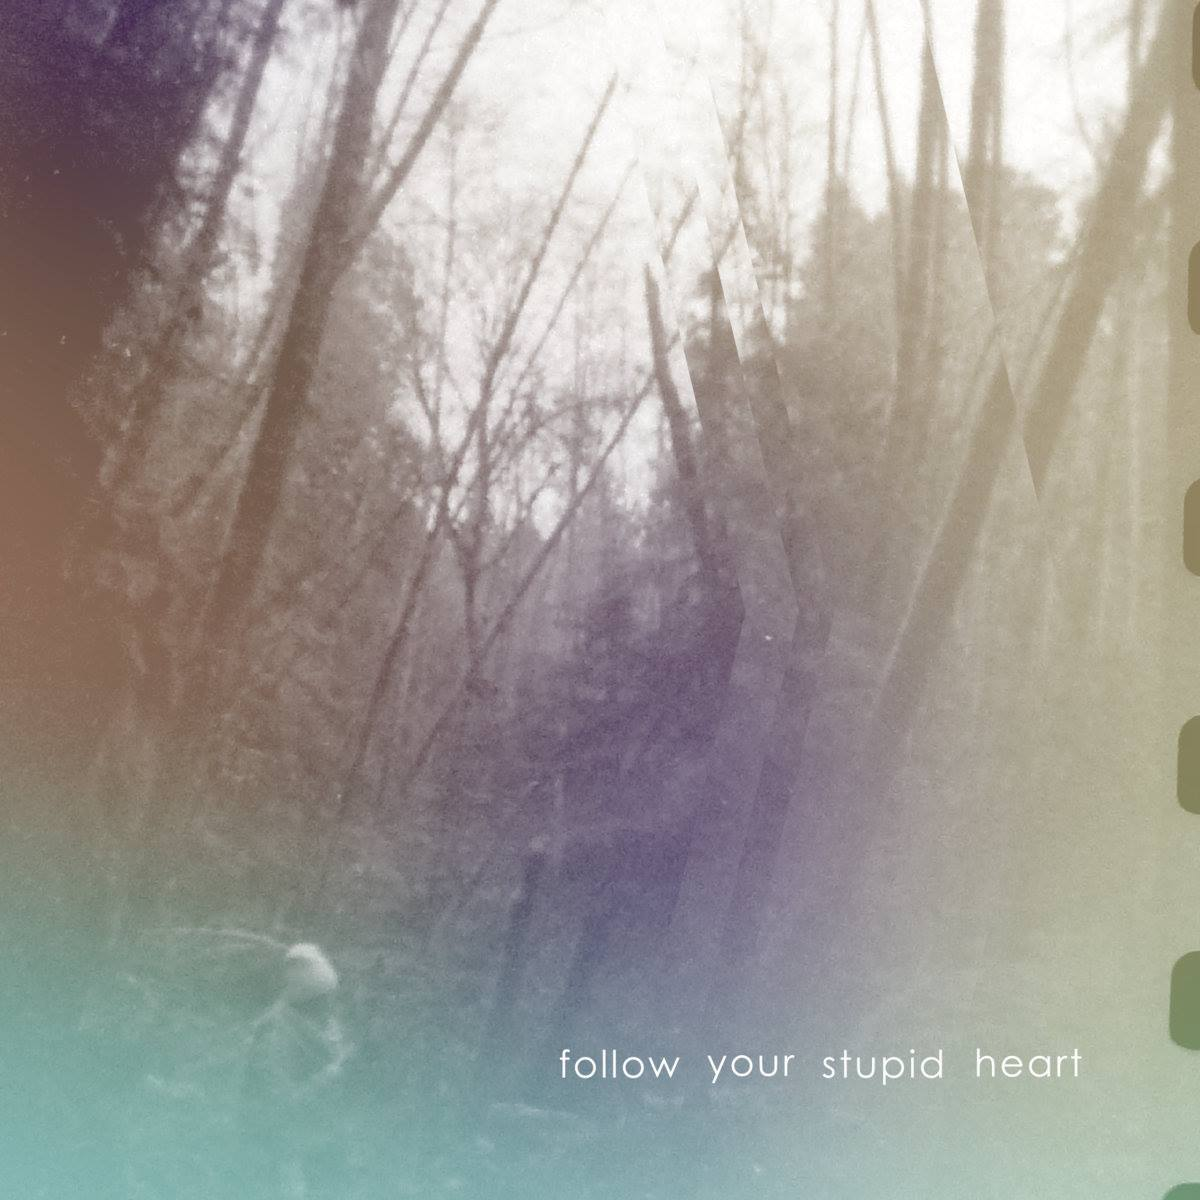 Follow Your Stupid Heart Album Art